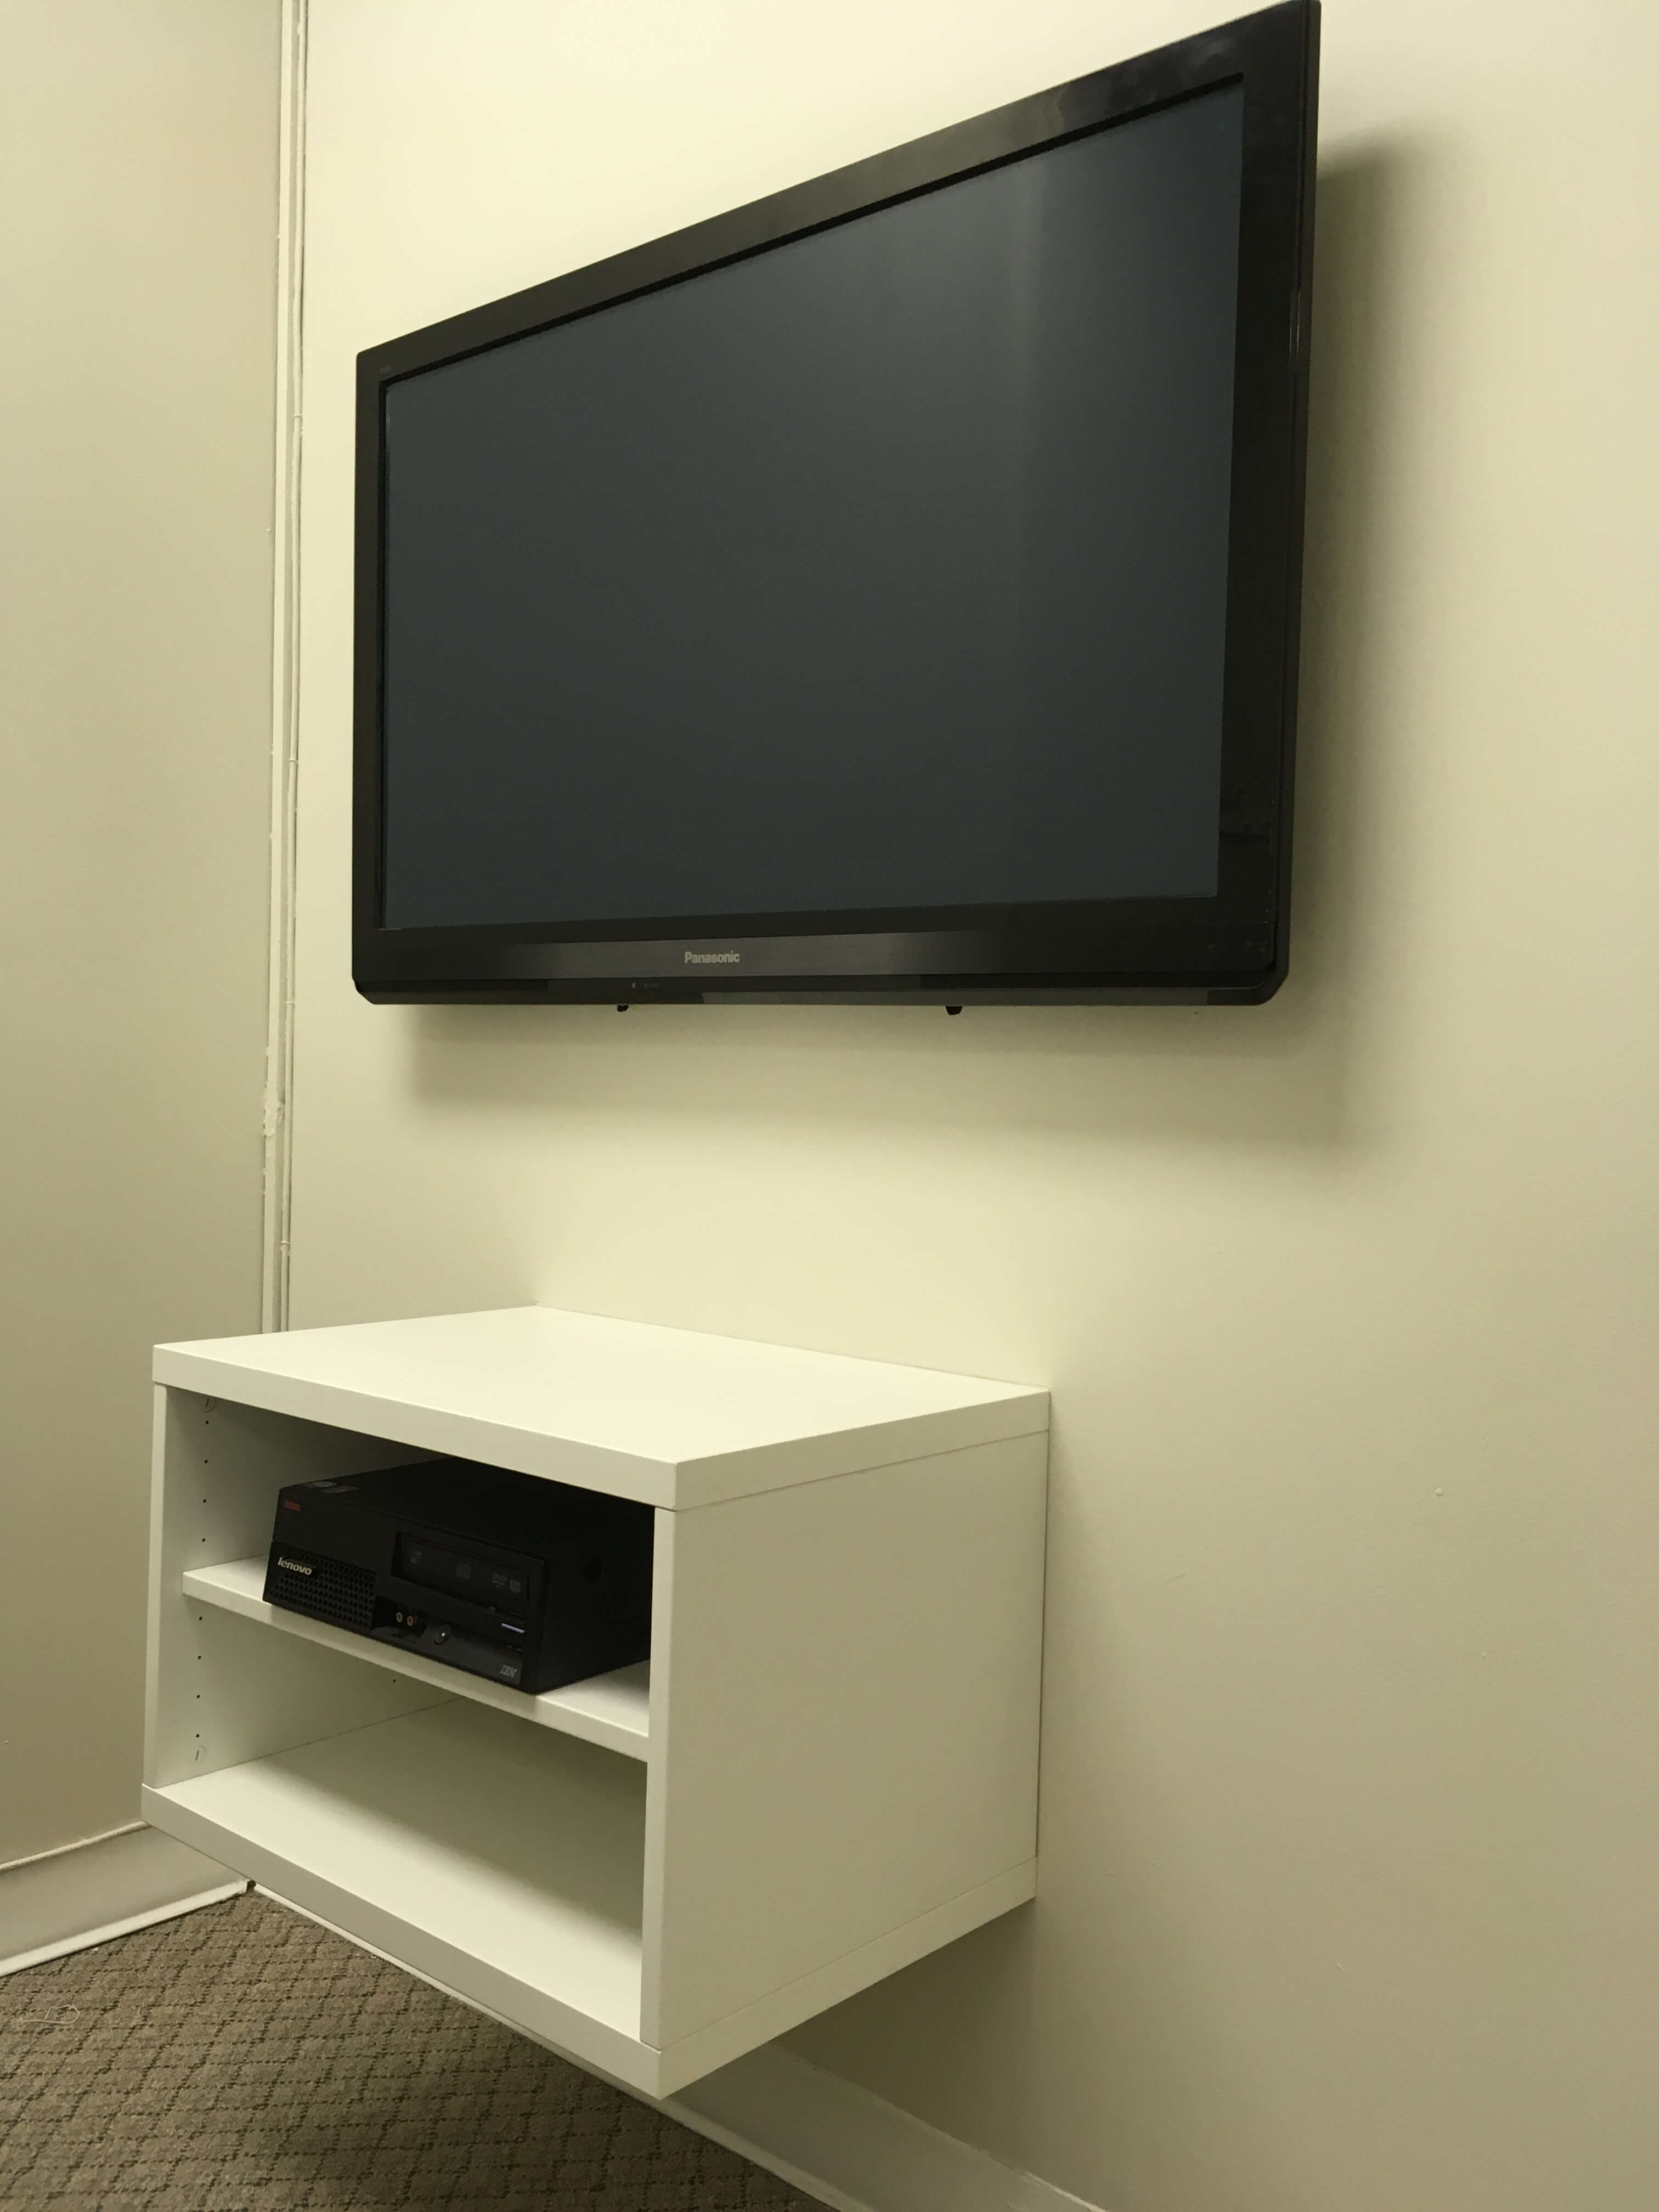 In Wall Media Cabinet Wall Mounted Media Cabinet That Can Hide All Your Cords And